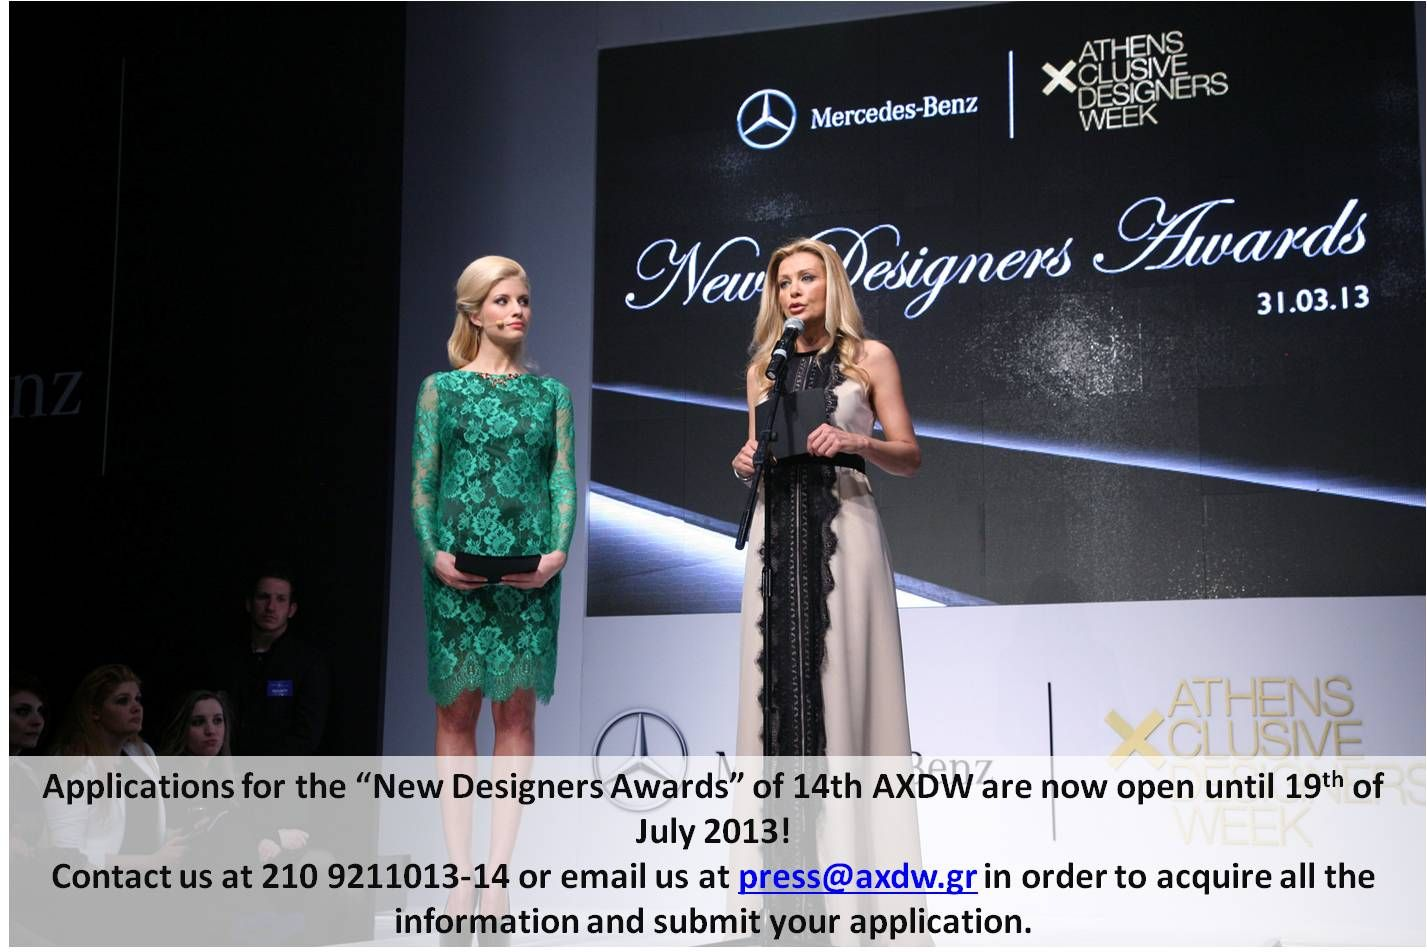 Applications for new designers are now open formal